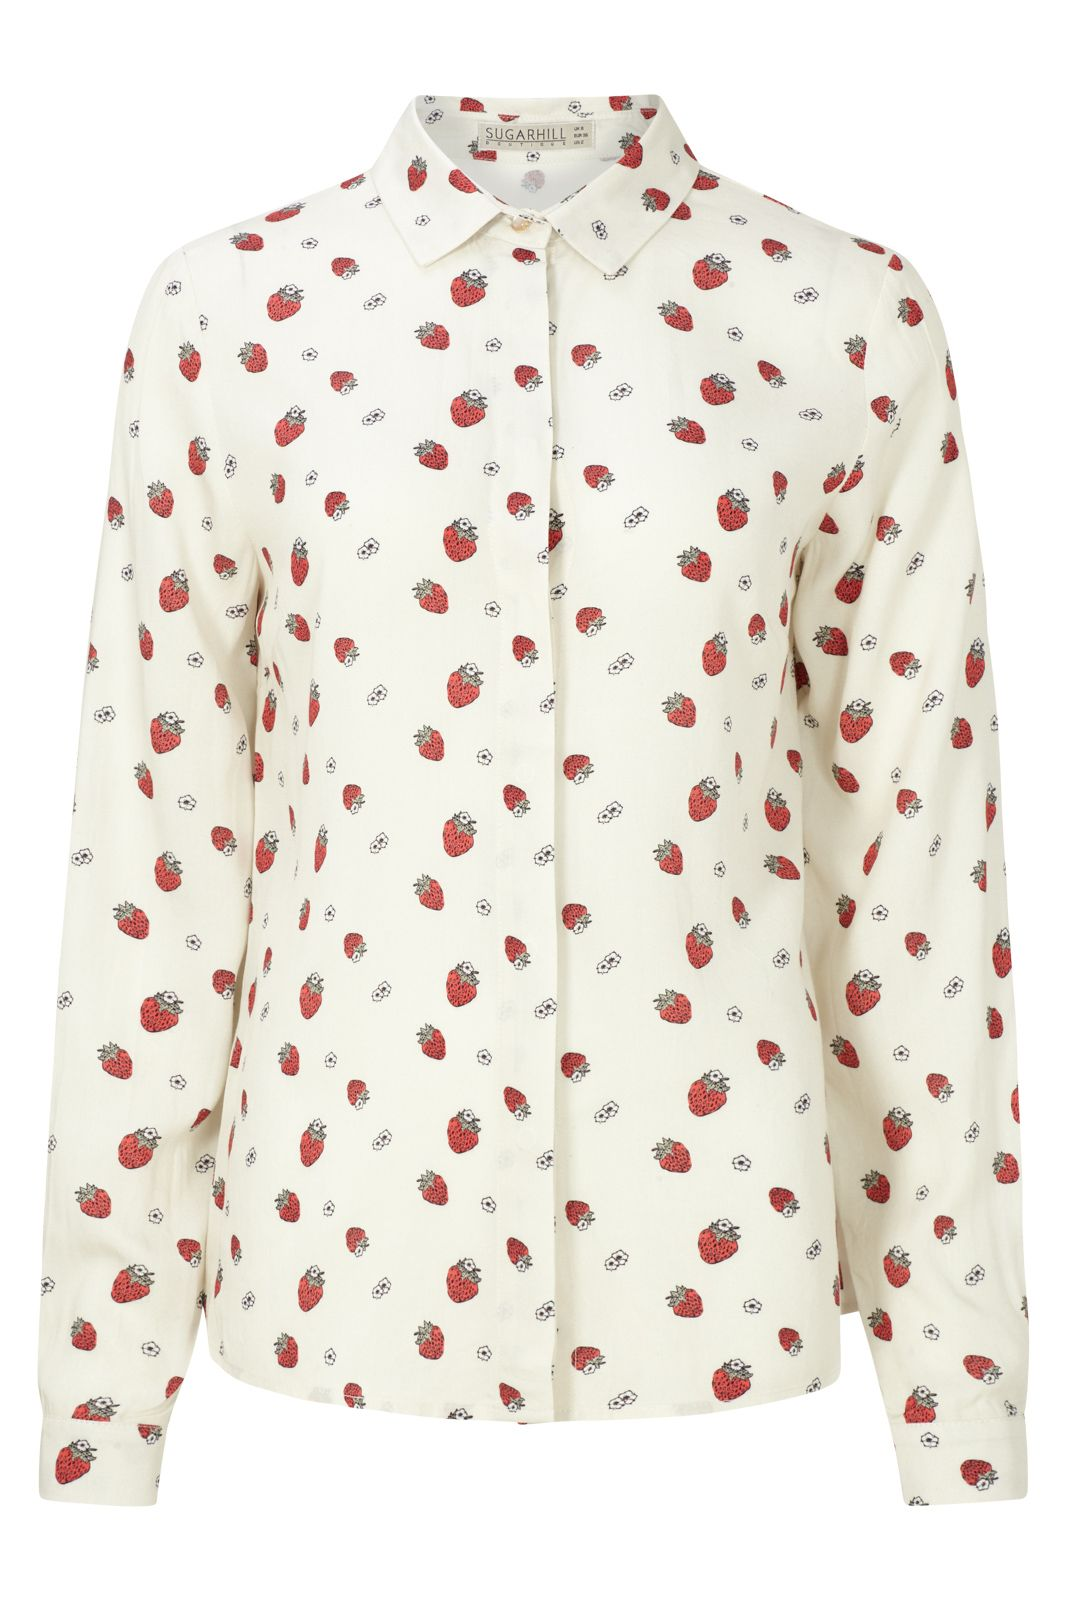 Sugarhill Boutique Blair Strawberry Shirt, Cream